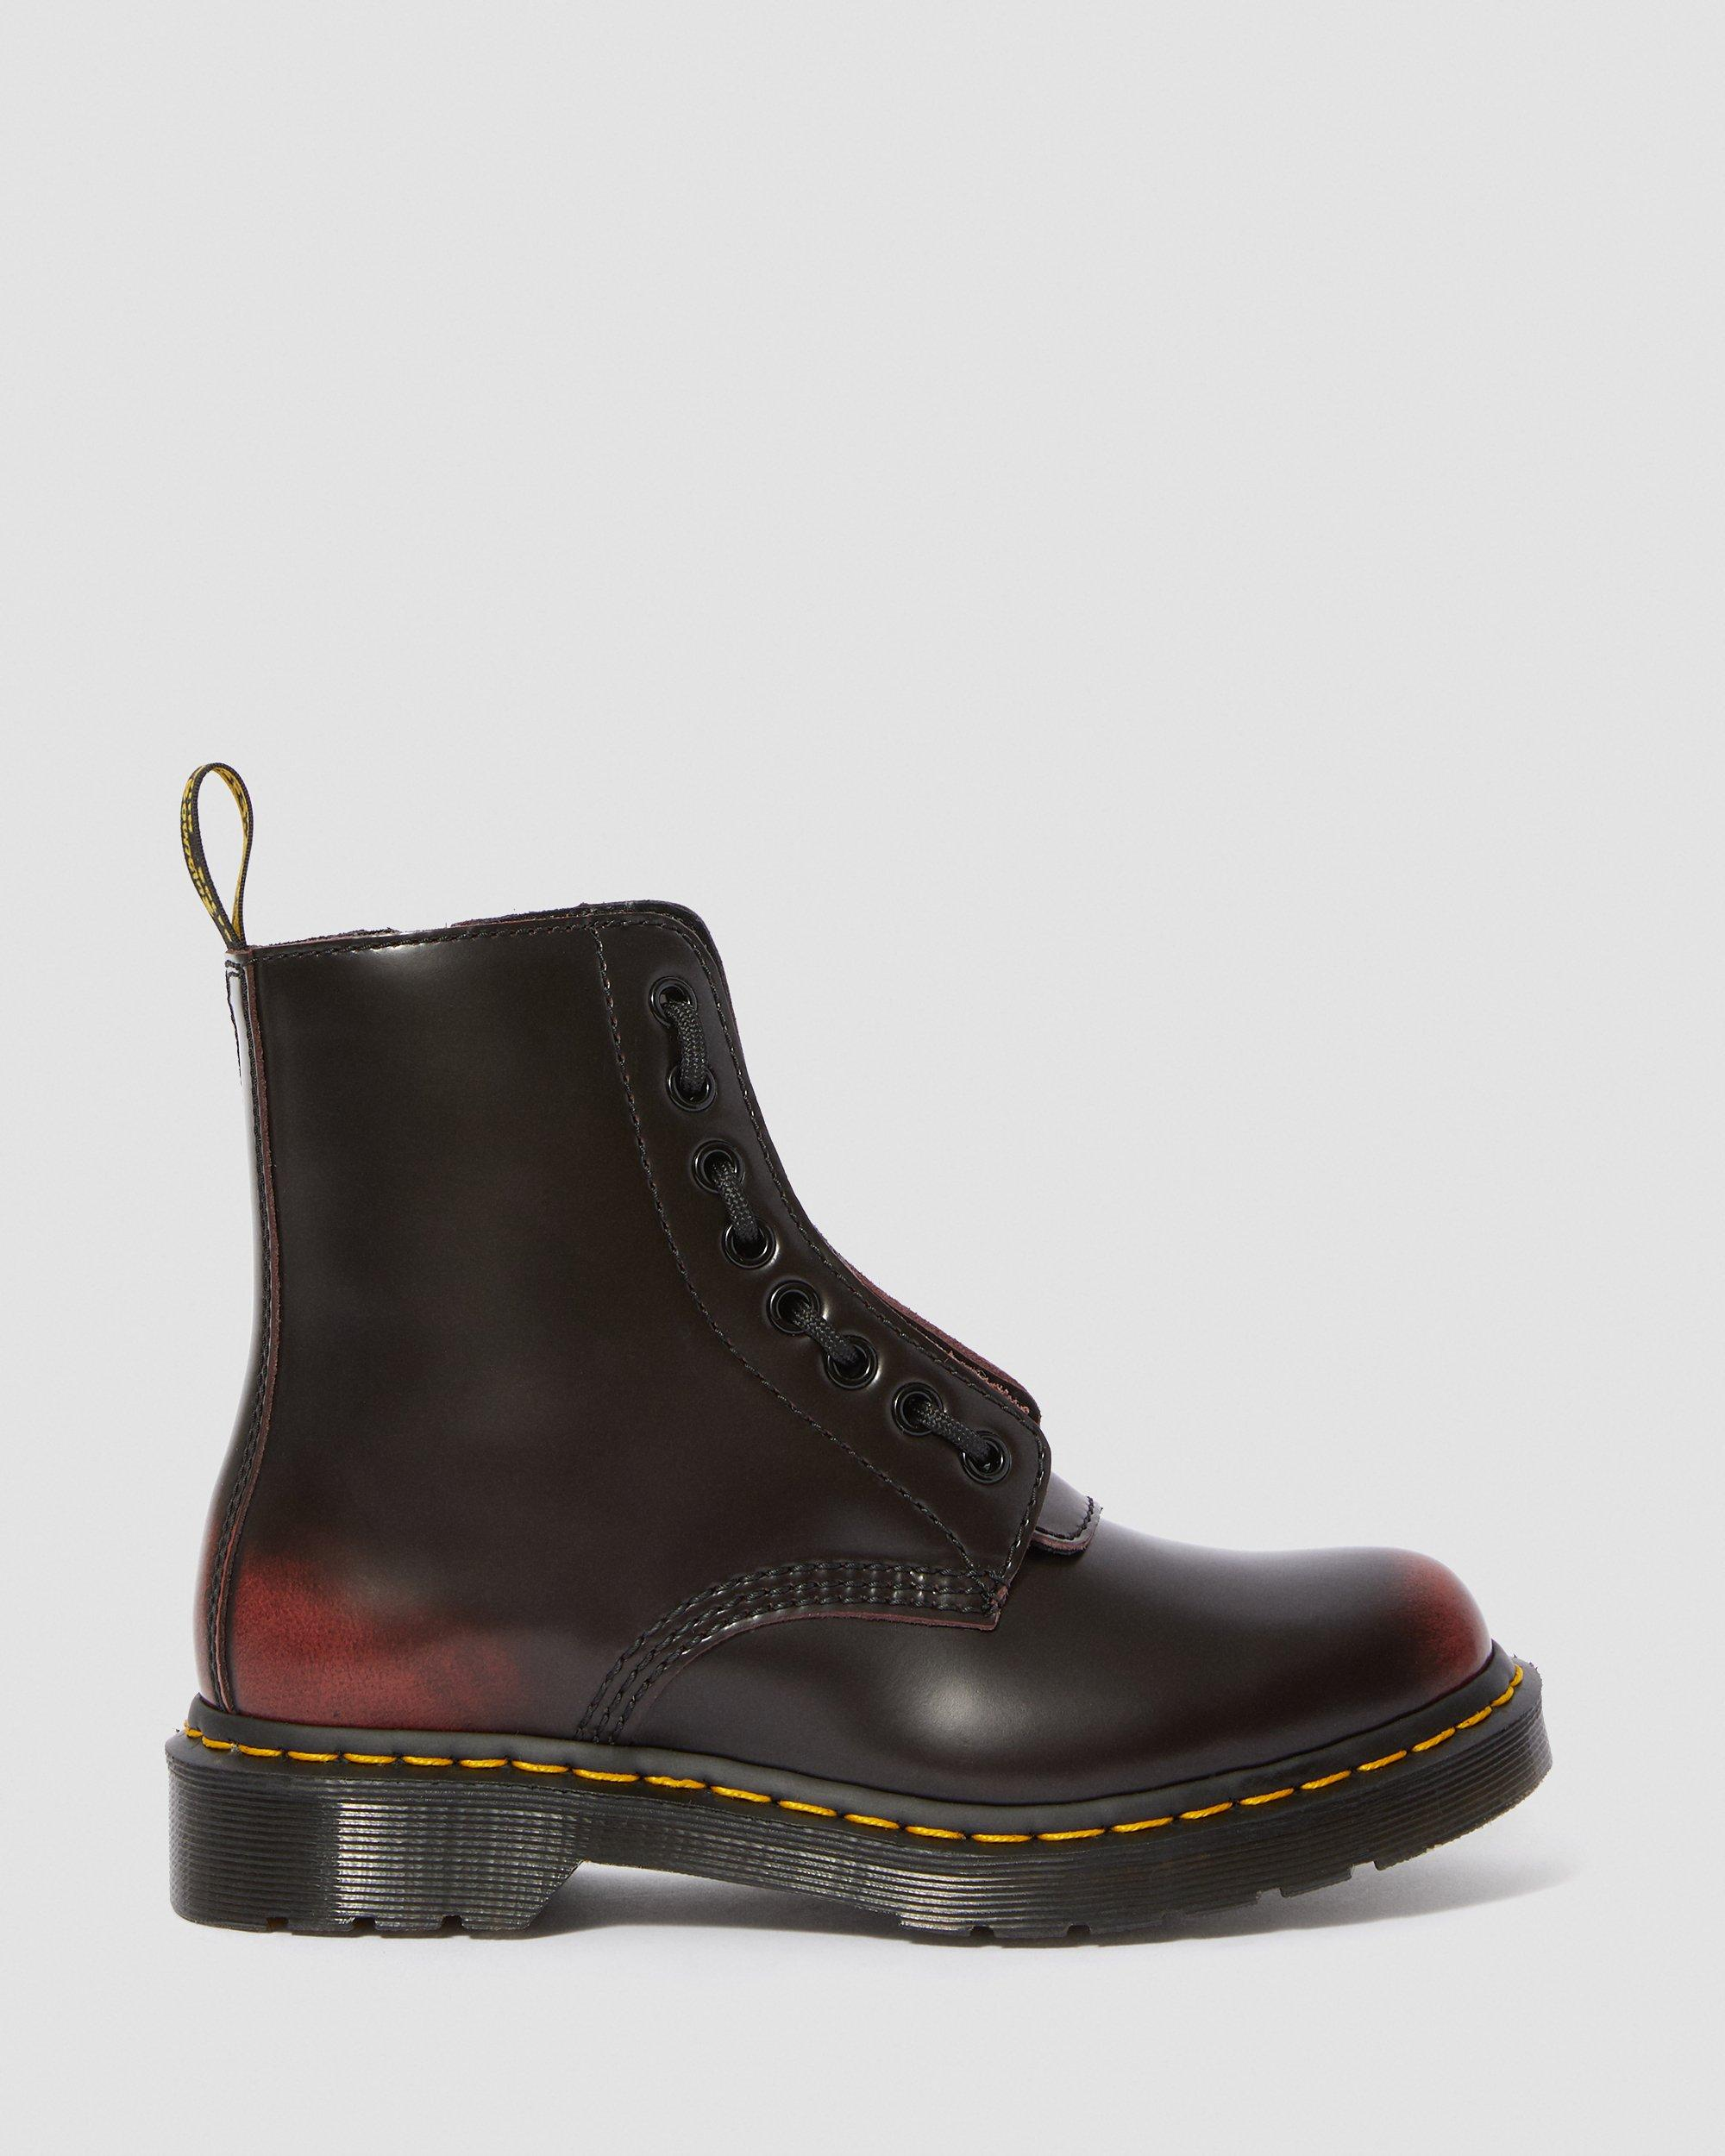 1460 PASCAL FRONT ZIP | Stiefel & Schuhe in Cherry Red